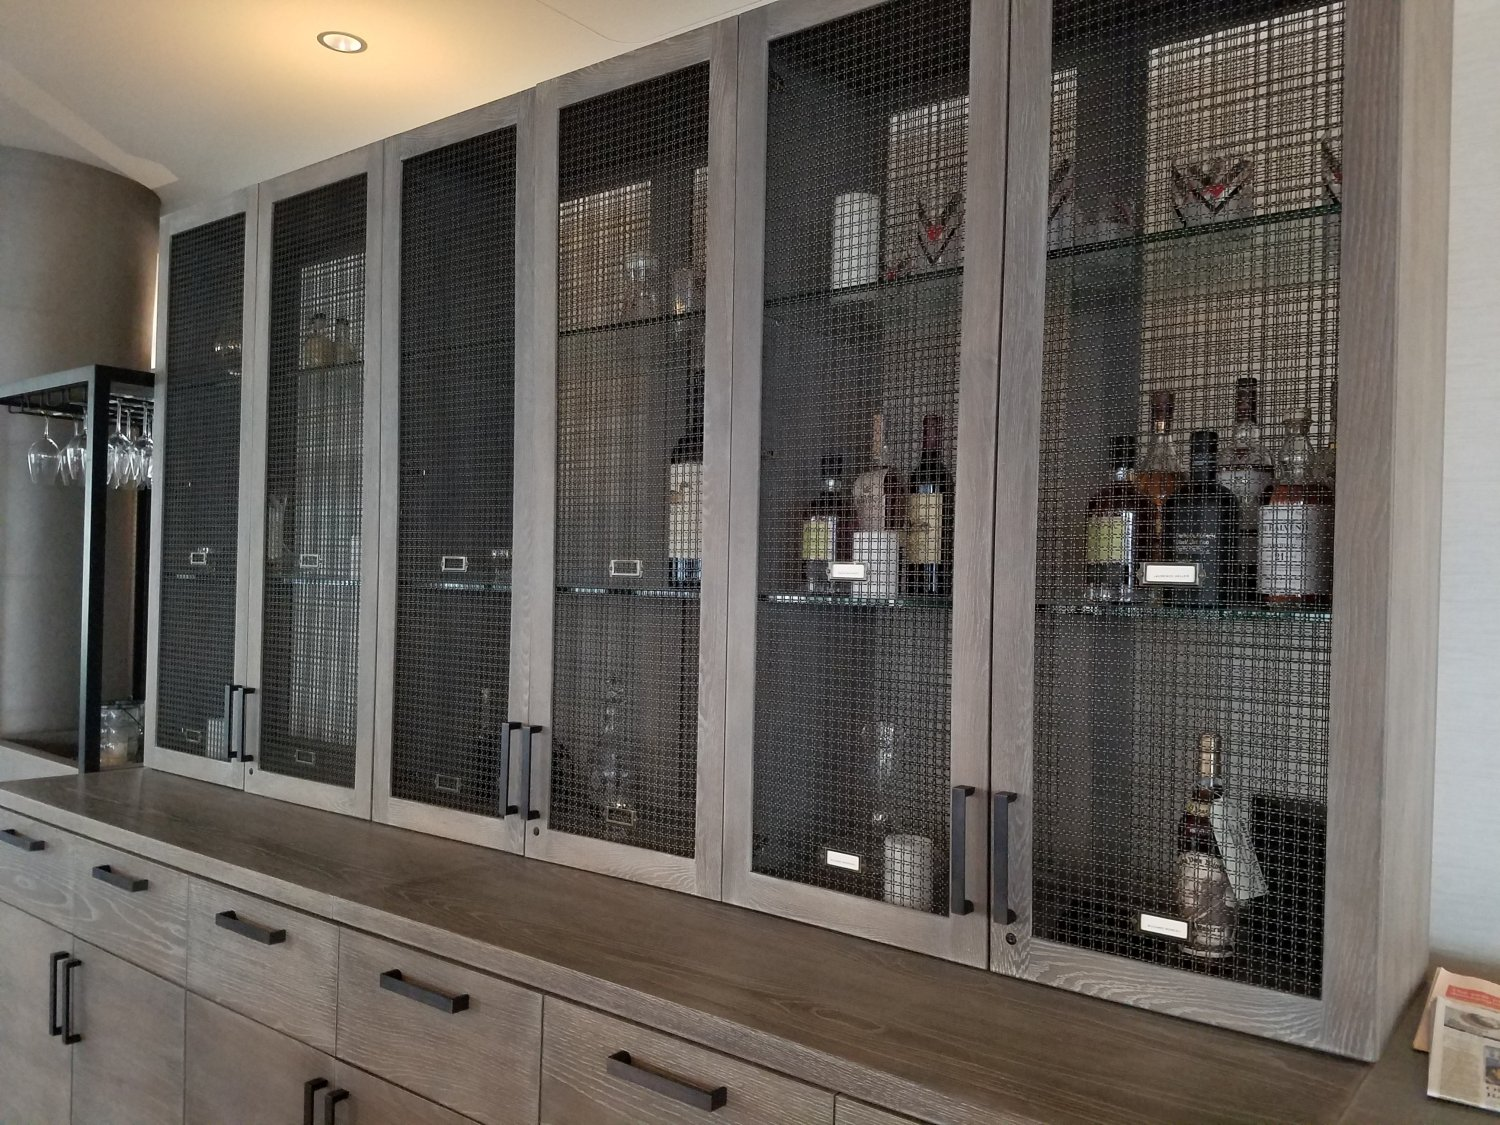 The wall of Bourbon lockers. Buy a bottle from the bar and store it here for your personal enjoyment.